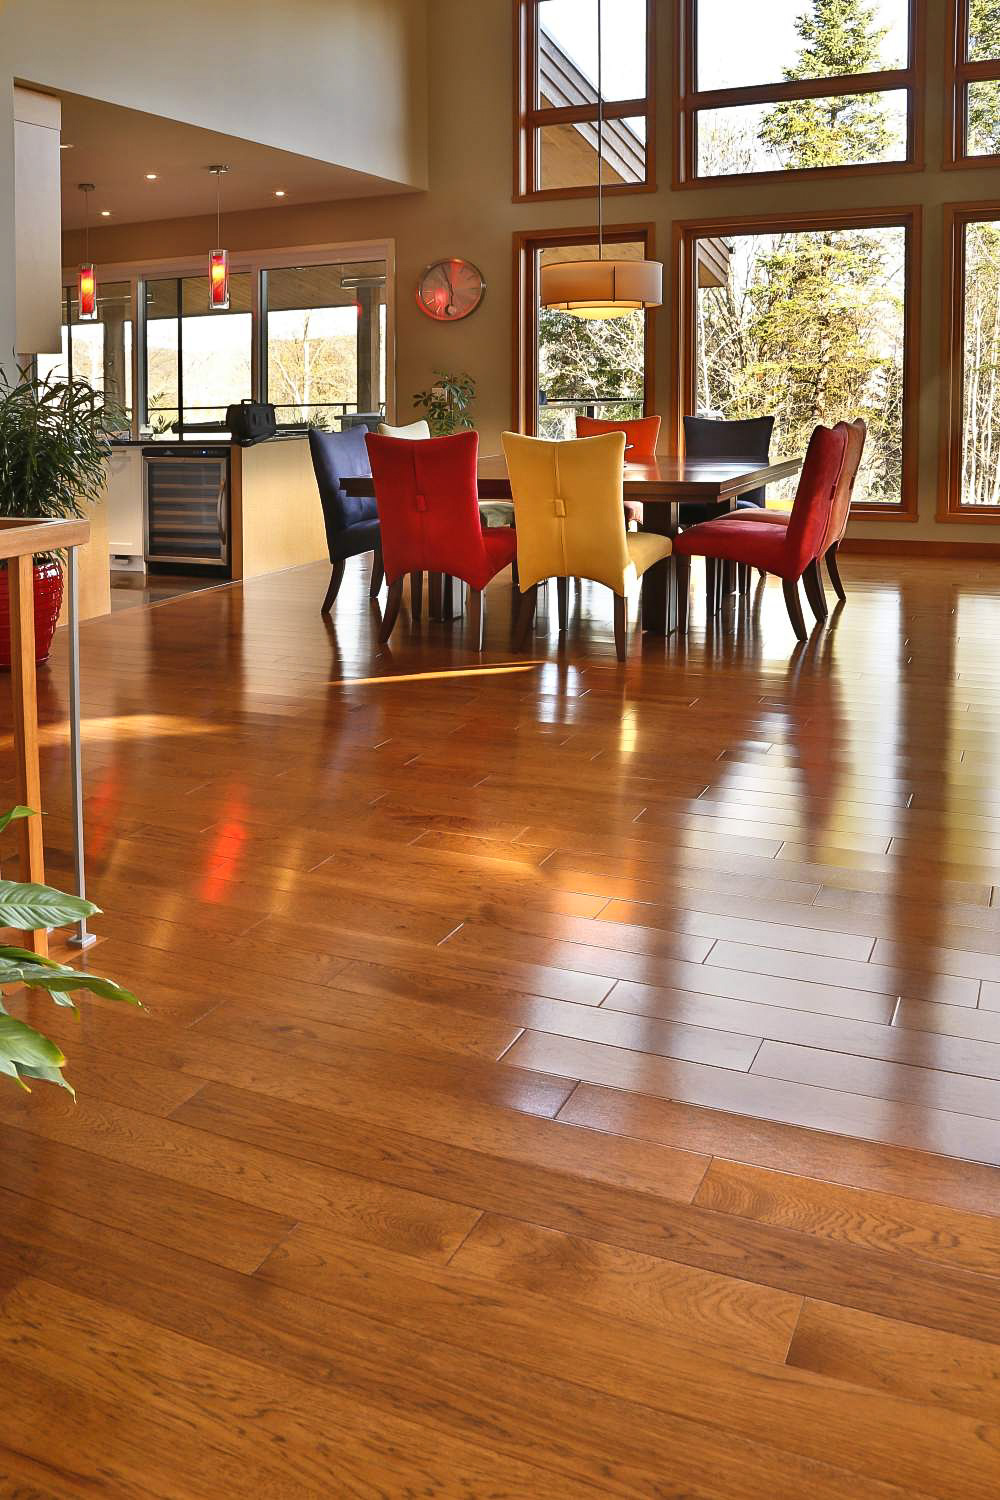 dining room stained hickory floor.jpg